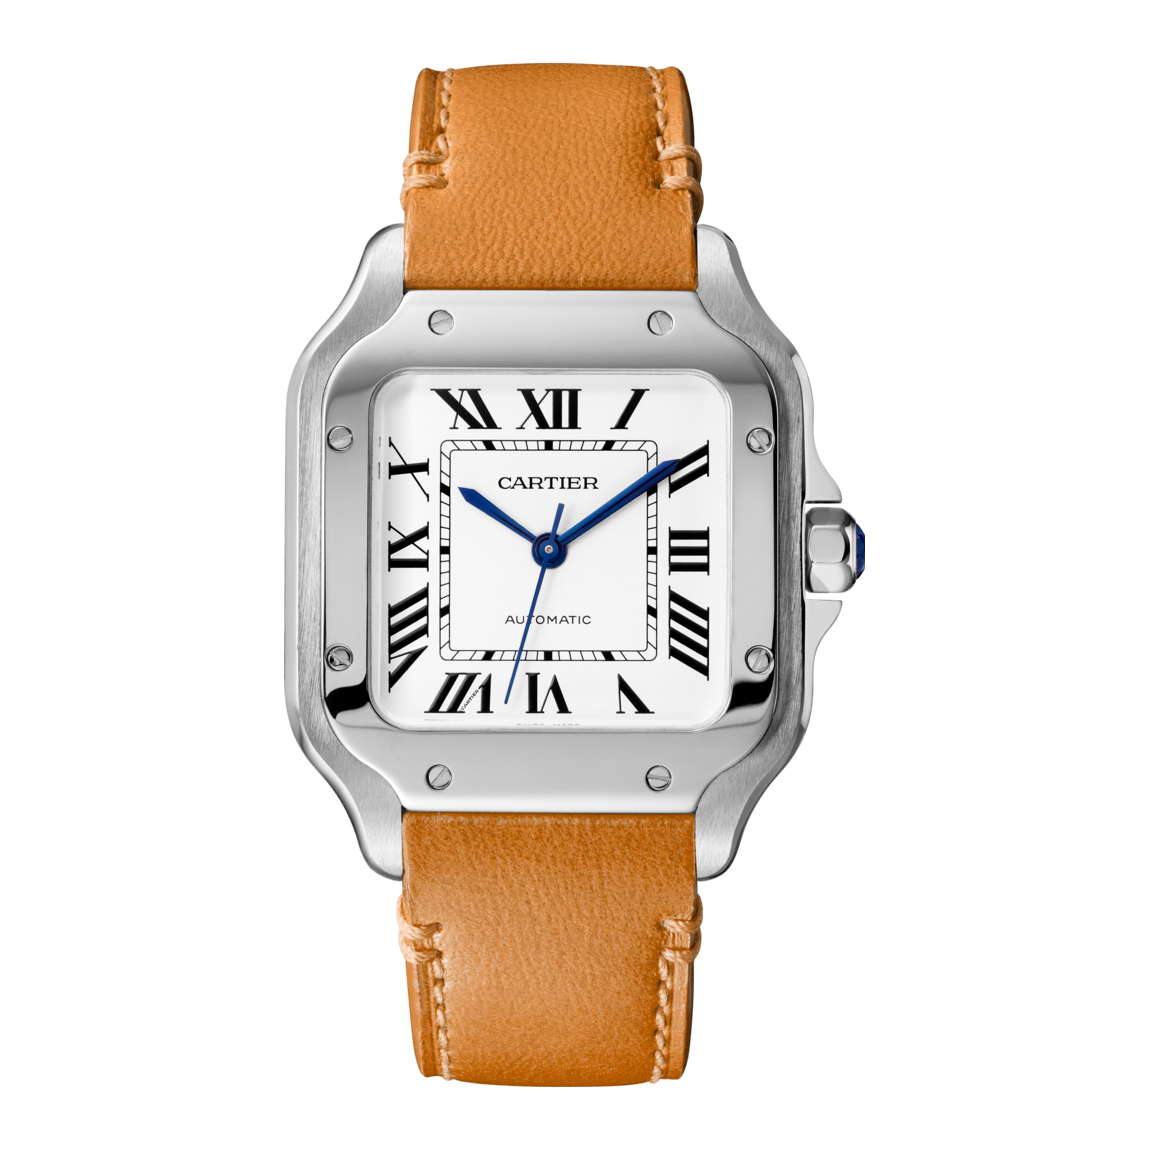 best cartier s image stainless santos watch watches world steel